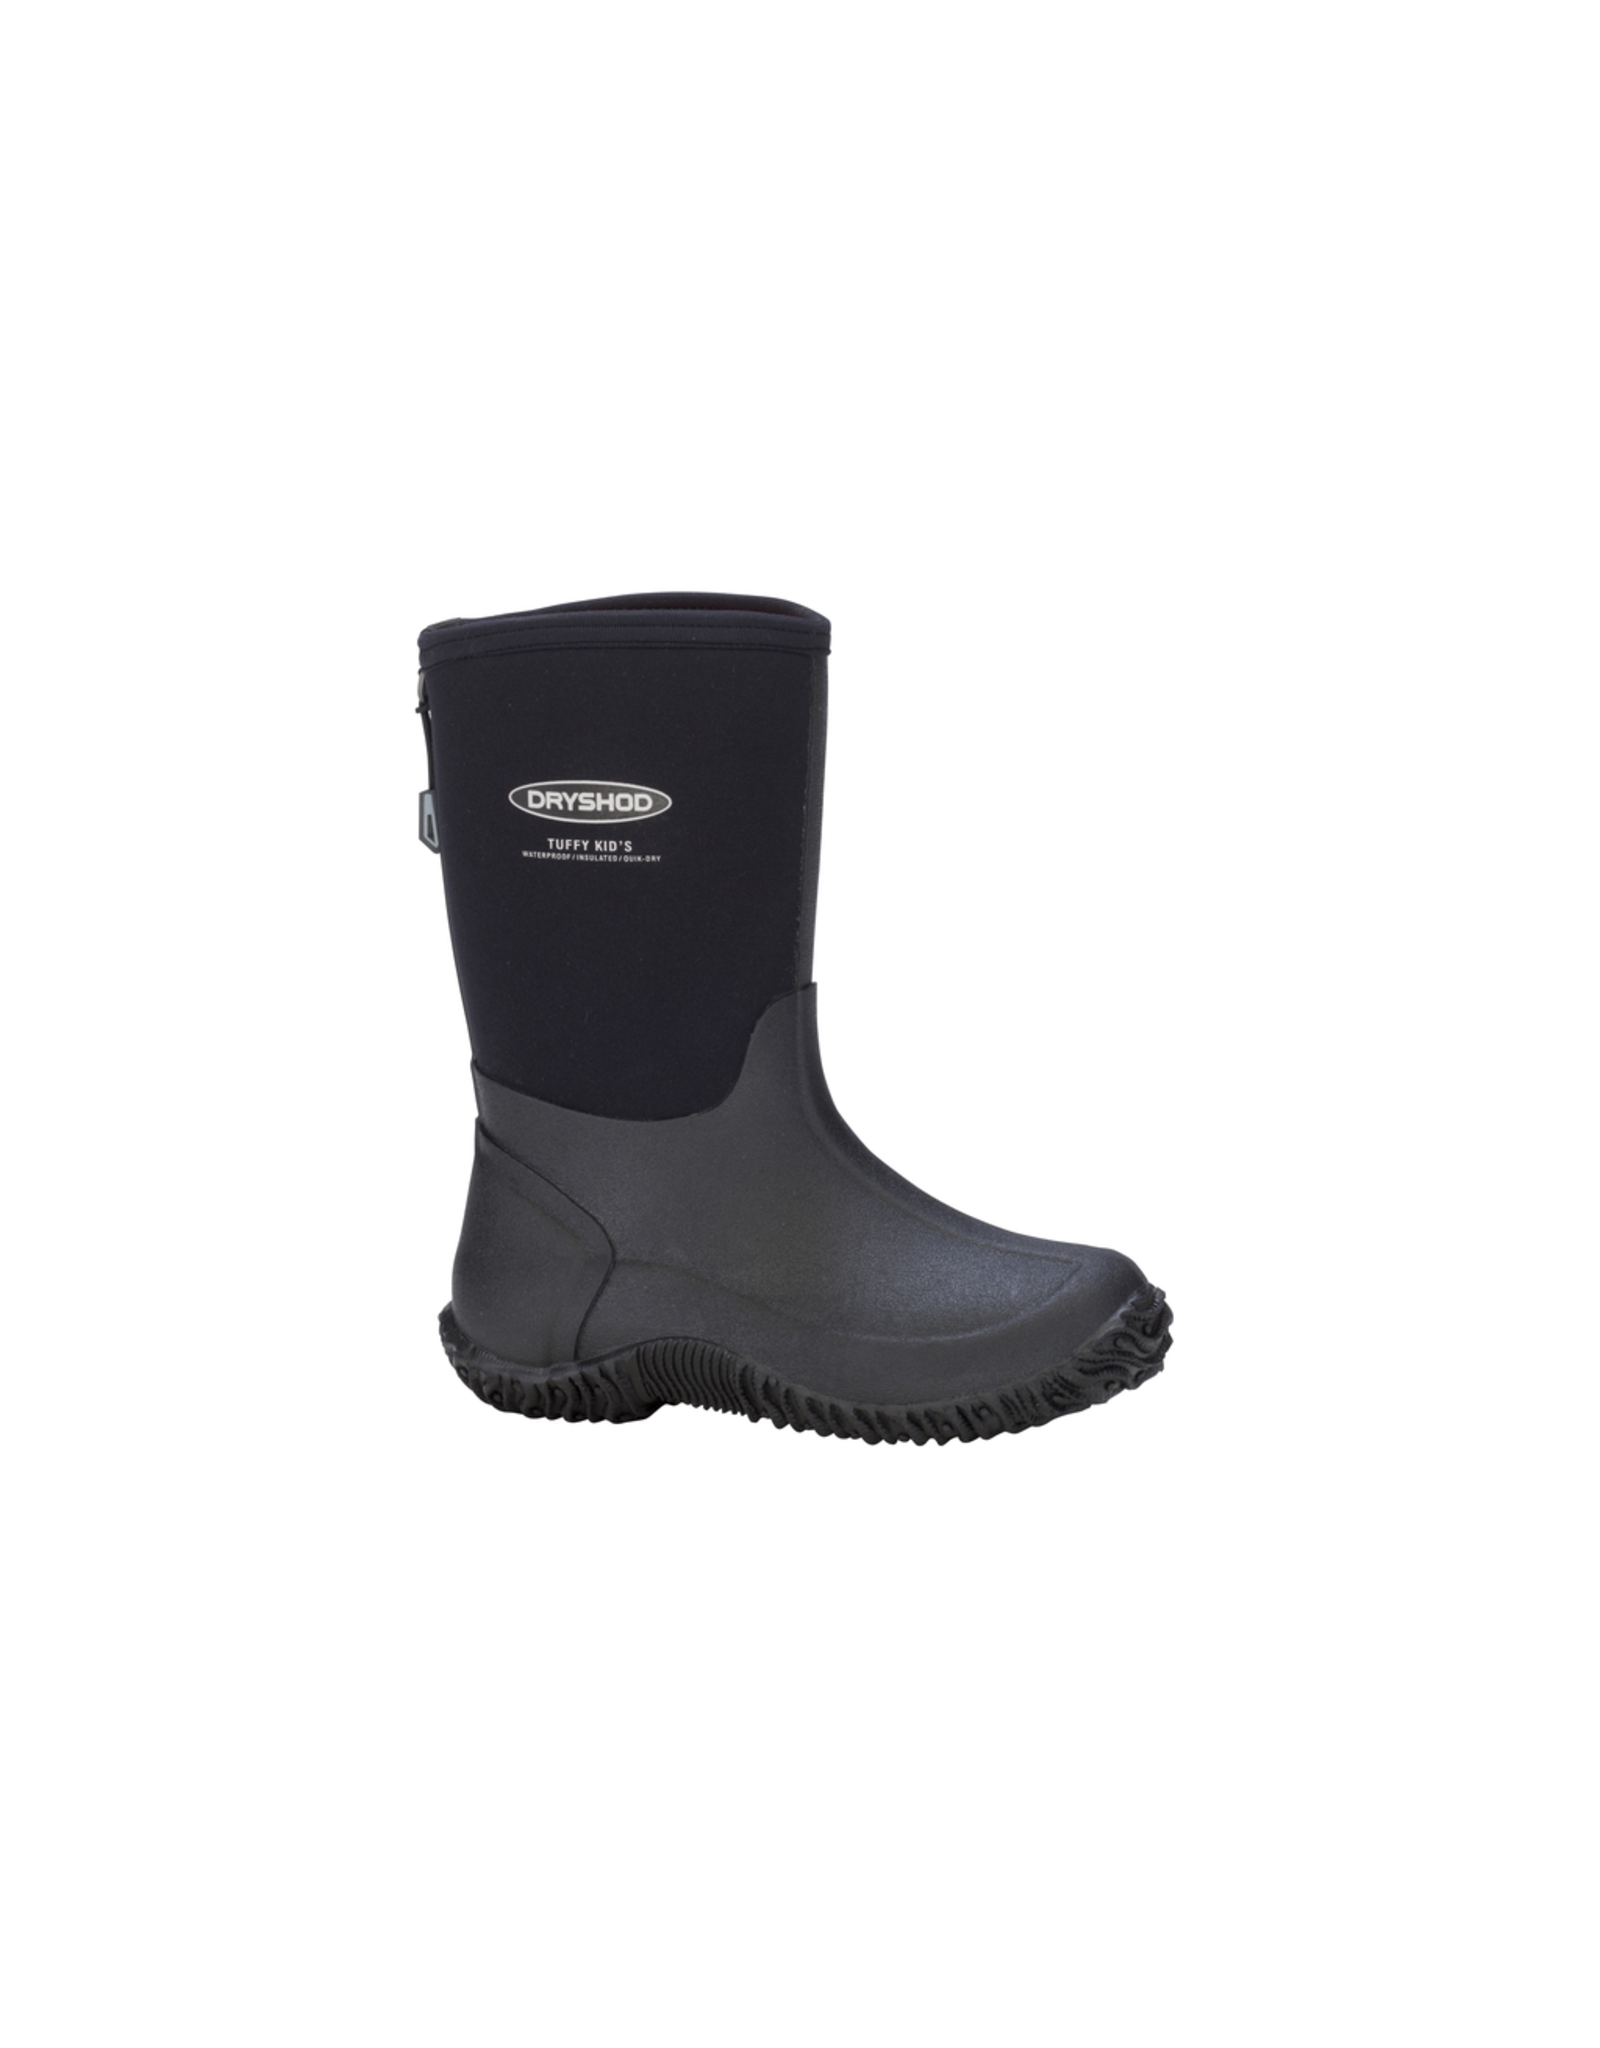 Boots-Children DRYSHOD Tuffy Kid���s  TUF-KD